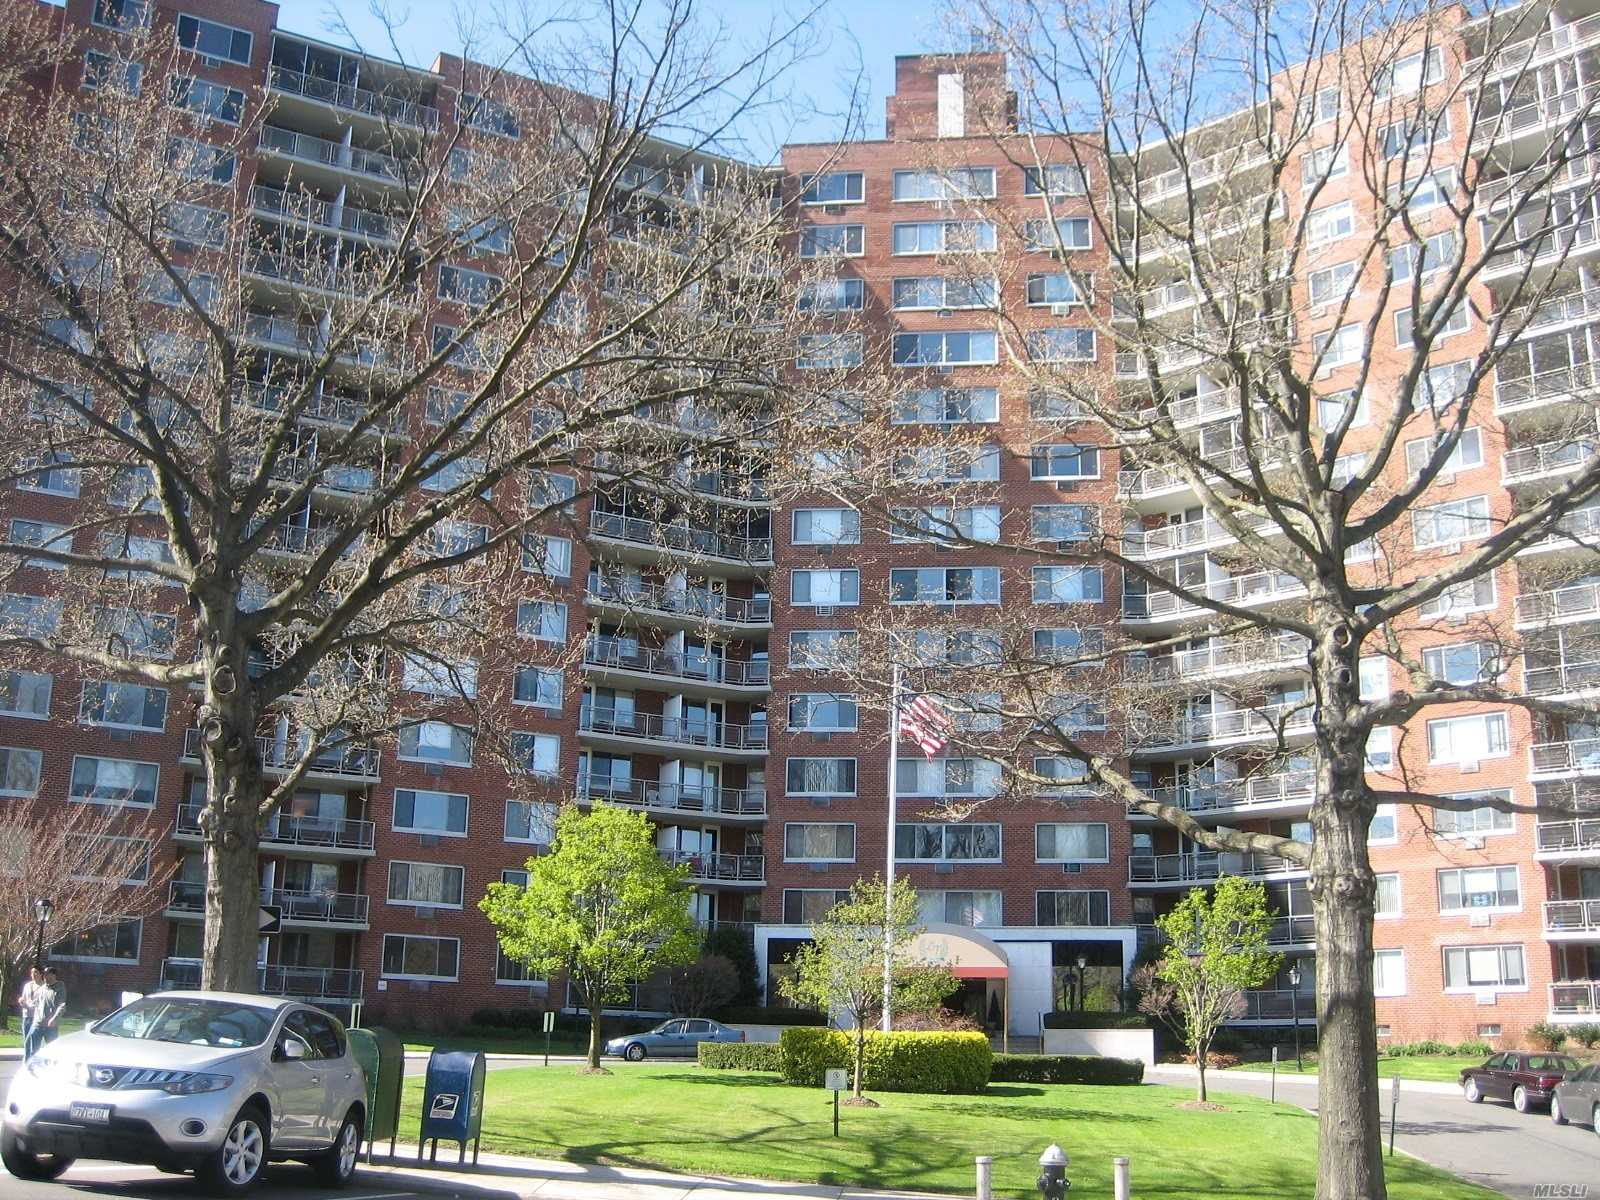 Co-op, Large Renovated Studio in 24Hr Doorman Building on High Floor, Southern Exposure facing Oakland Lake , Low Maintenance Includes All Utilities, Real Estate Taxes, Close to Long Island Rail Road, Shopping, Parkways, City and Express Buses